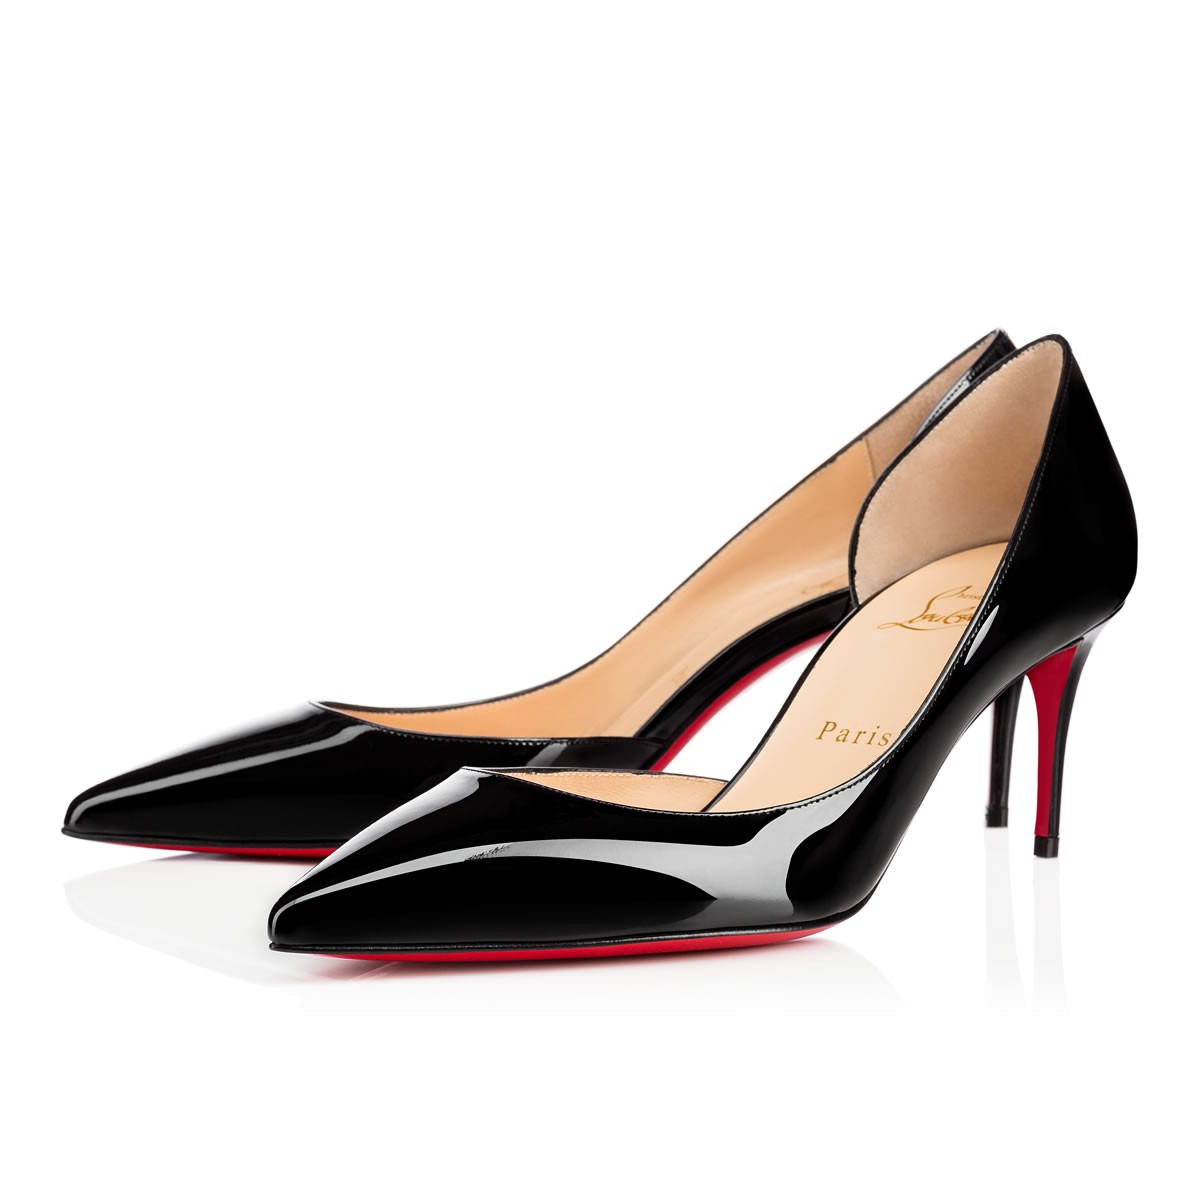 d36447482cf4 Christian Louboutin Iriza 70 Patent Leather D Orsay Pumps In Black ...